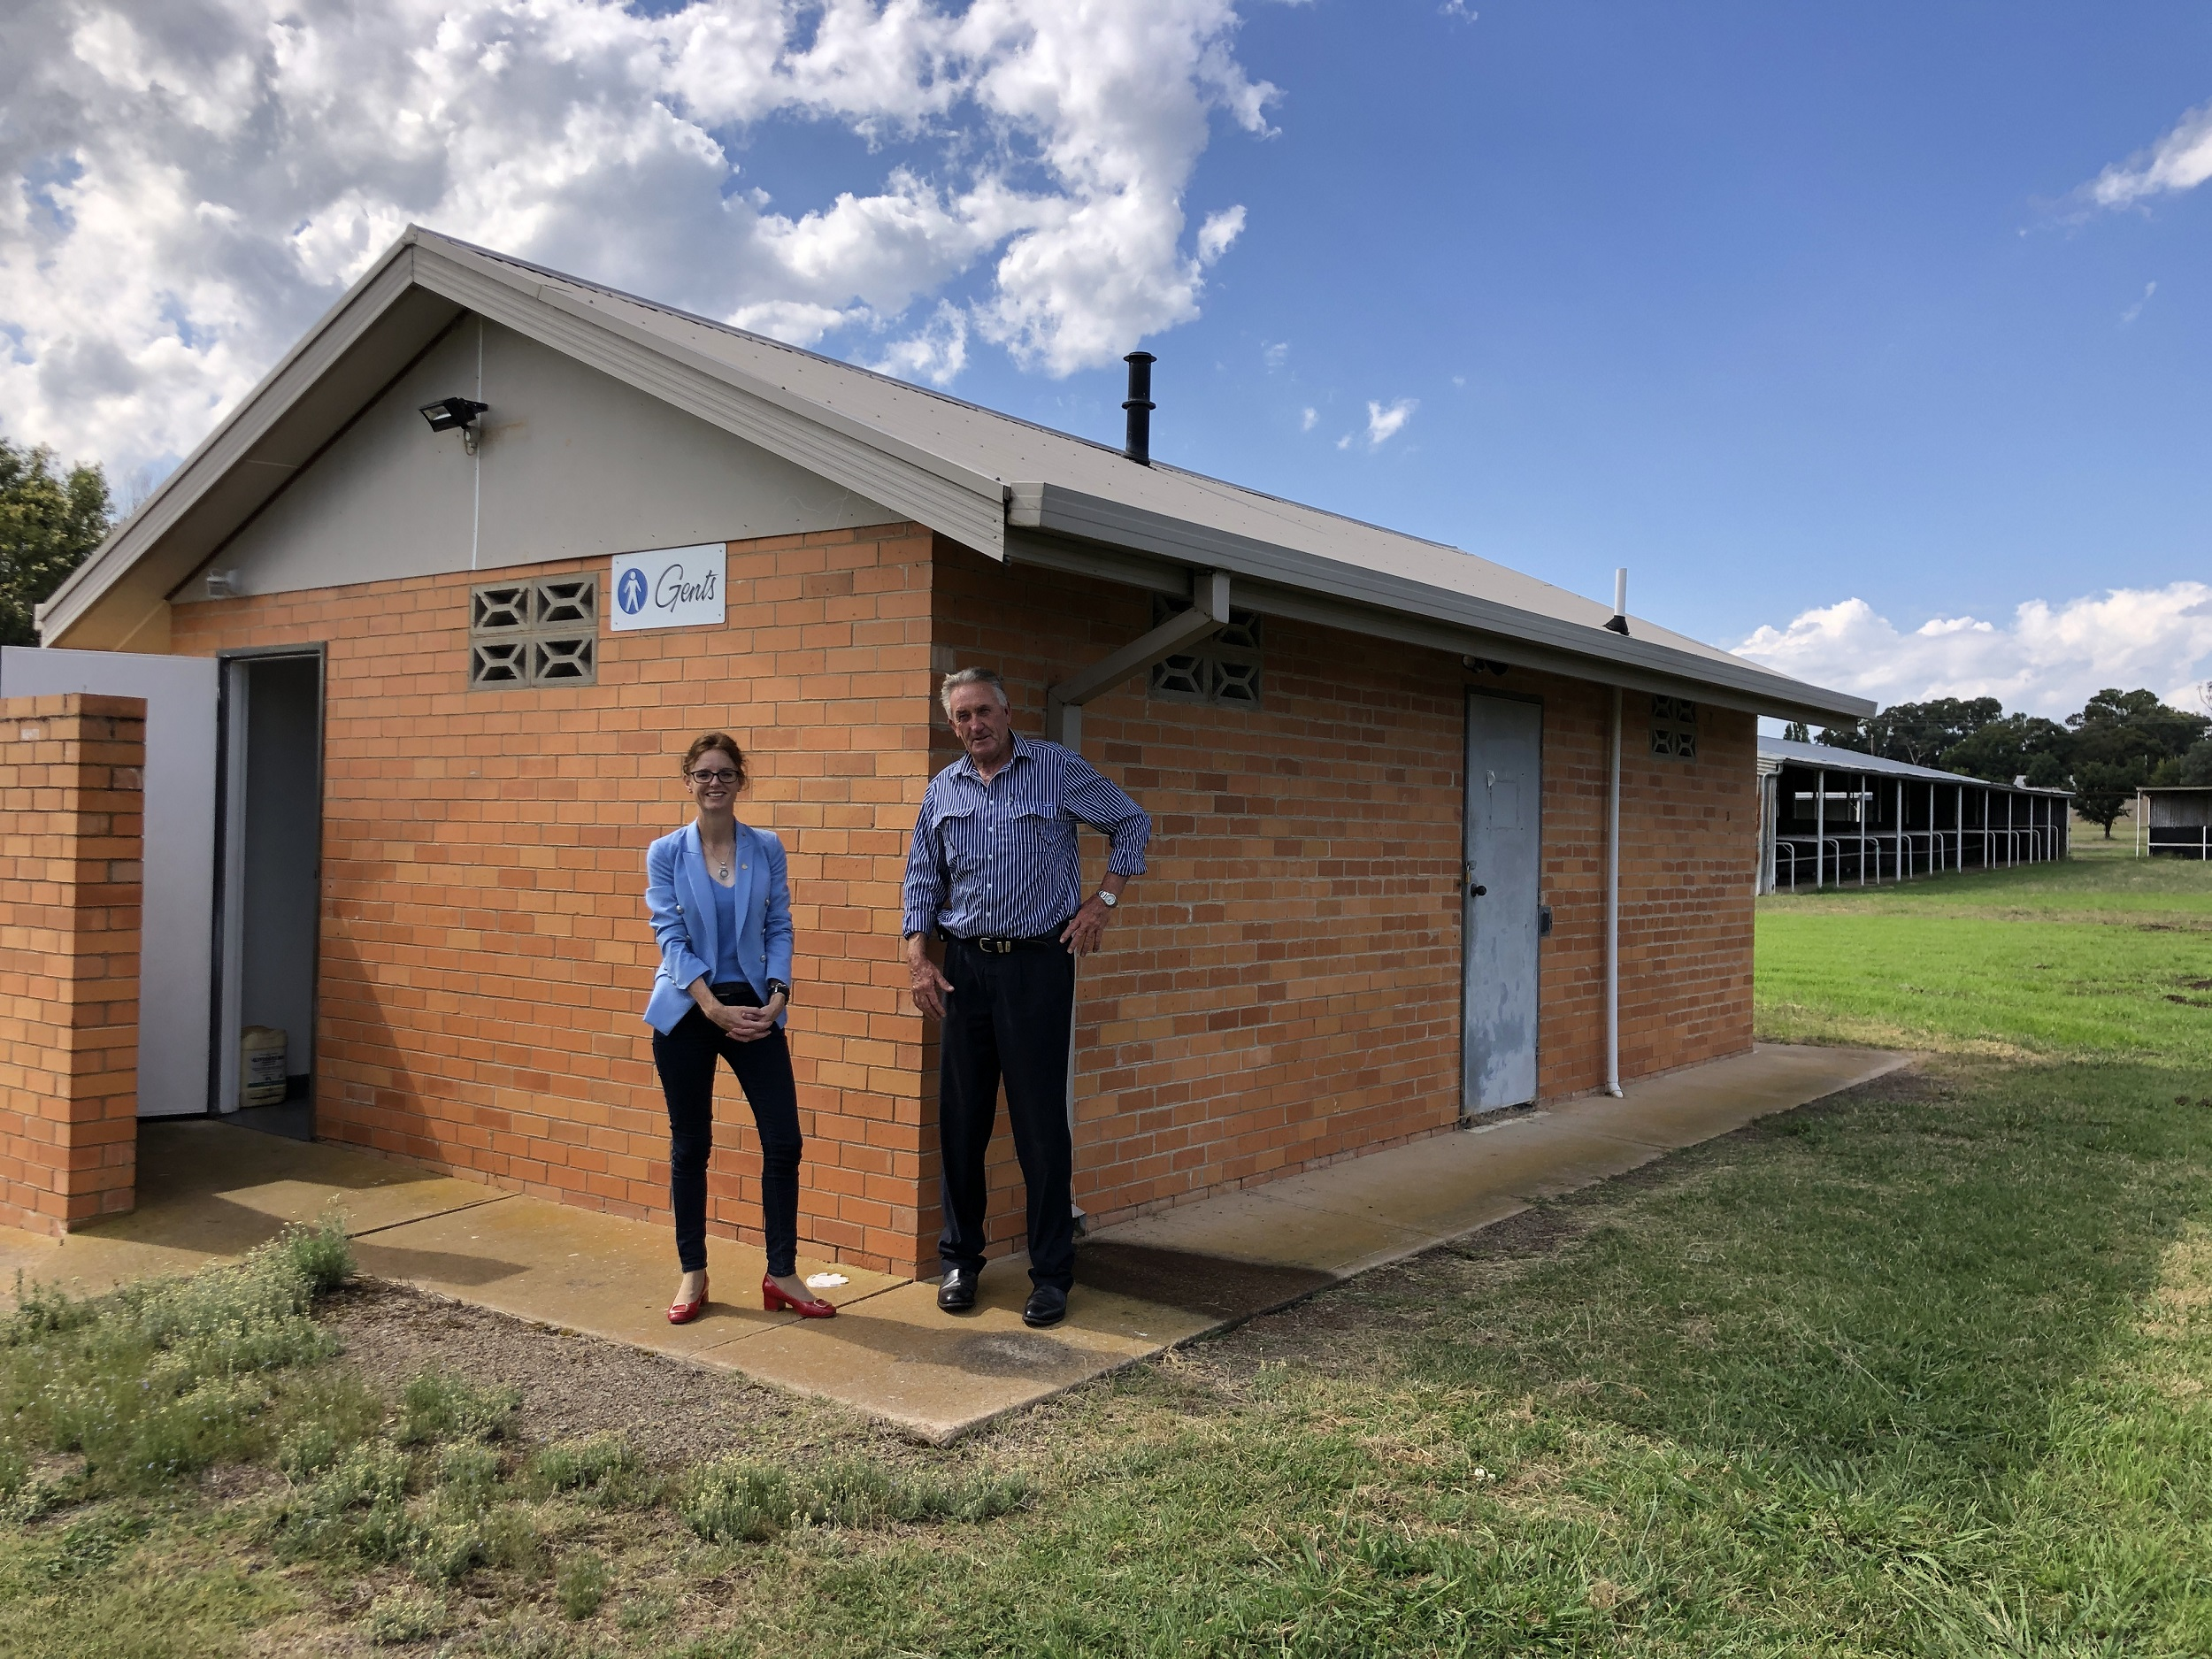 Steph Cooke and Dennis Palmer stand in front of the amenities building at the Cootamundra Showground.